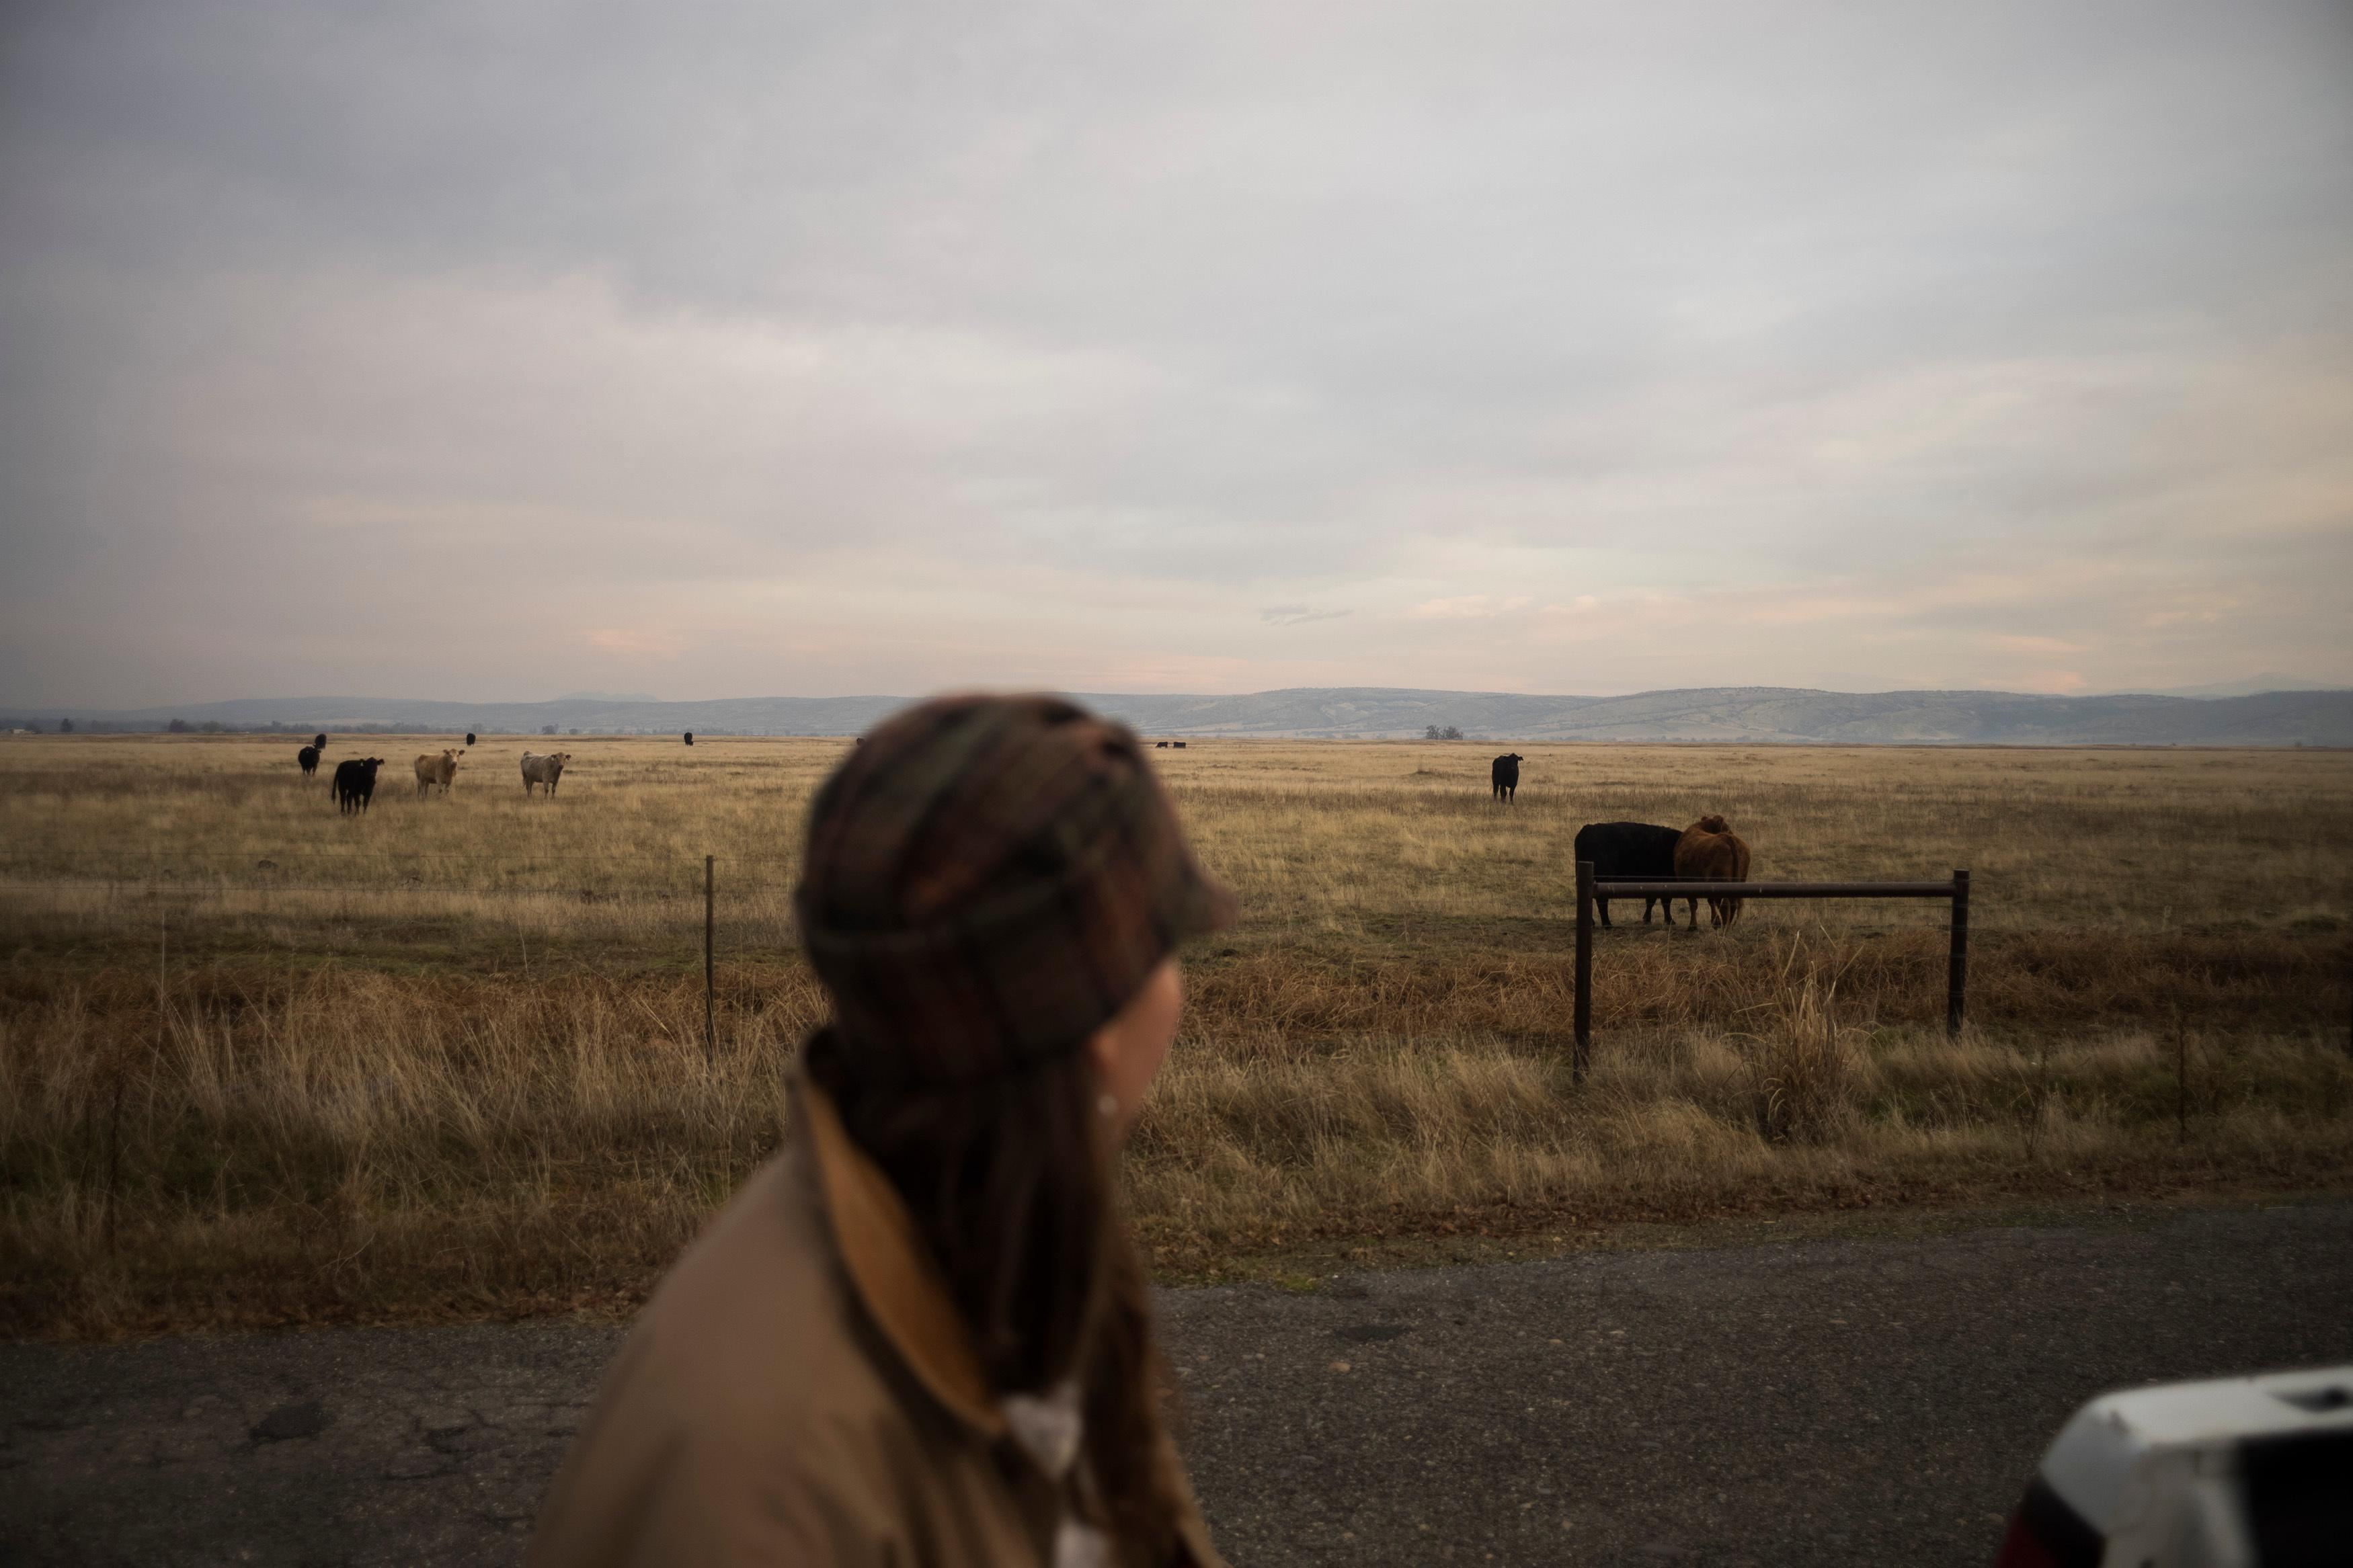 'It's tough sleeping at night': ranchers seek to protect herds as wolves move in